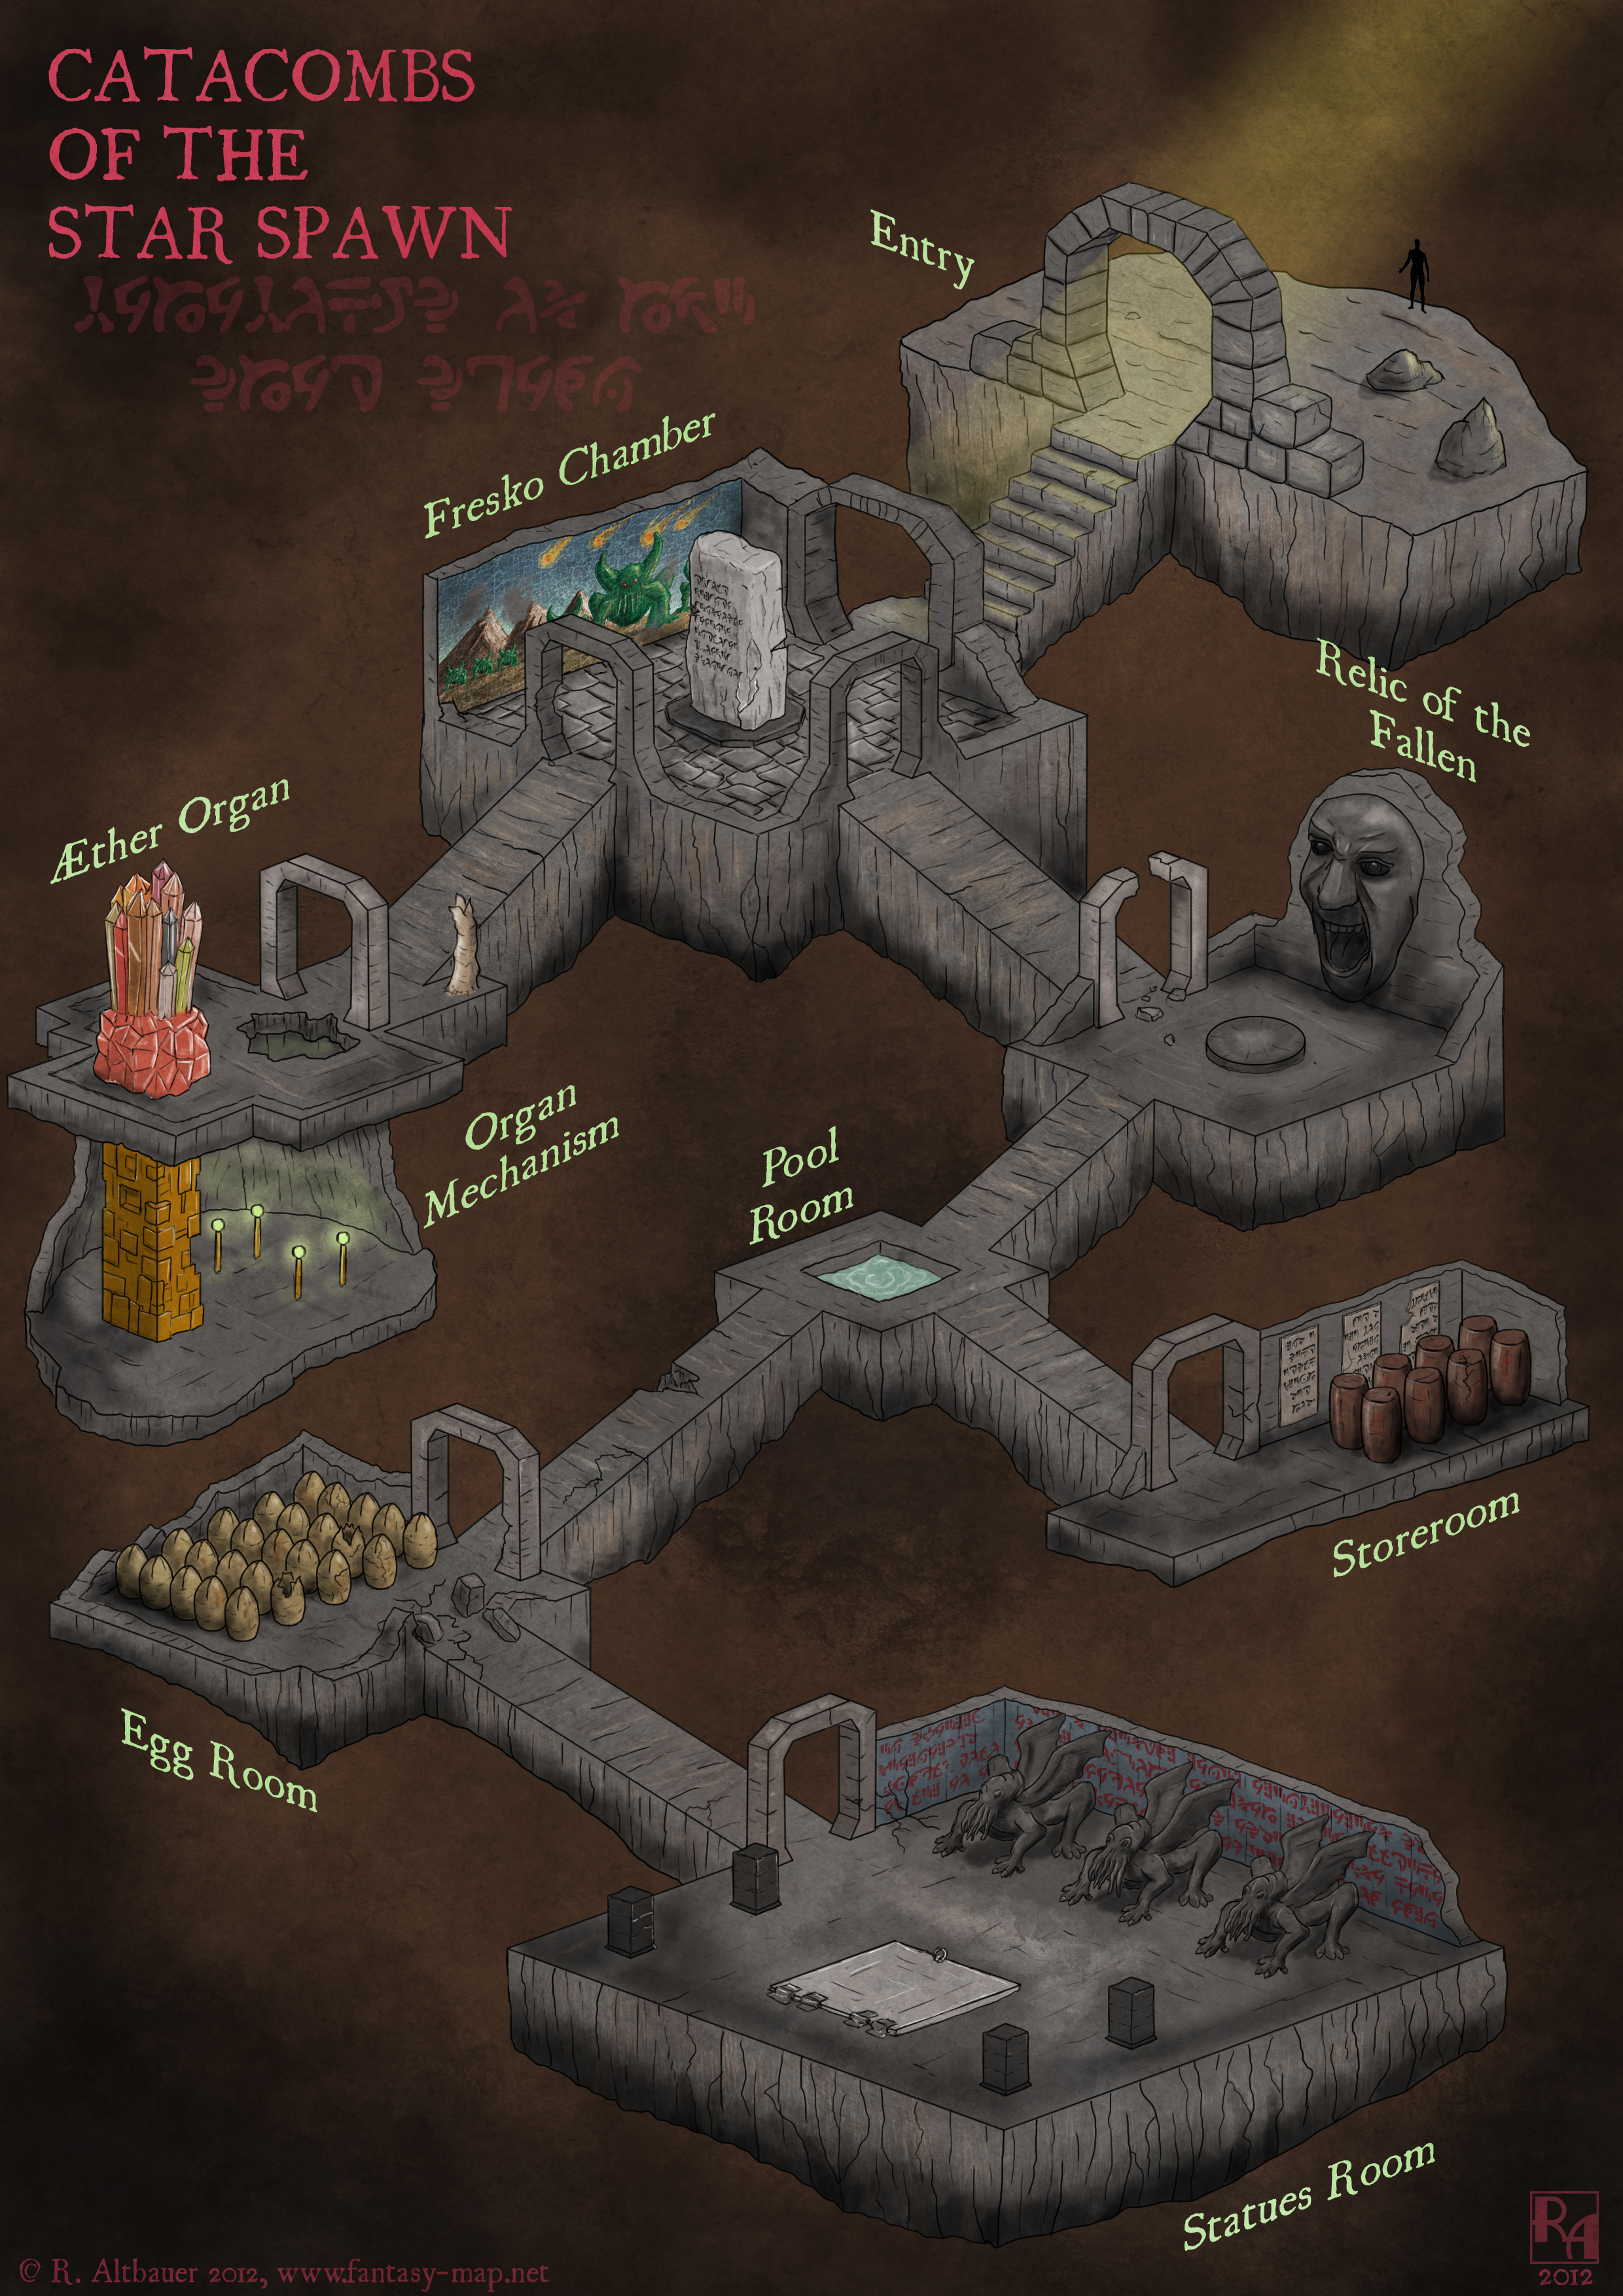 Map Of Mystery Star Spawn Catacombs Keep Rollin Sixes